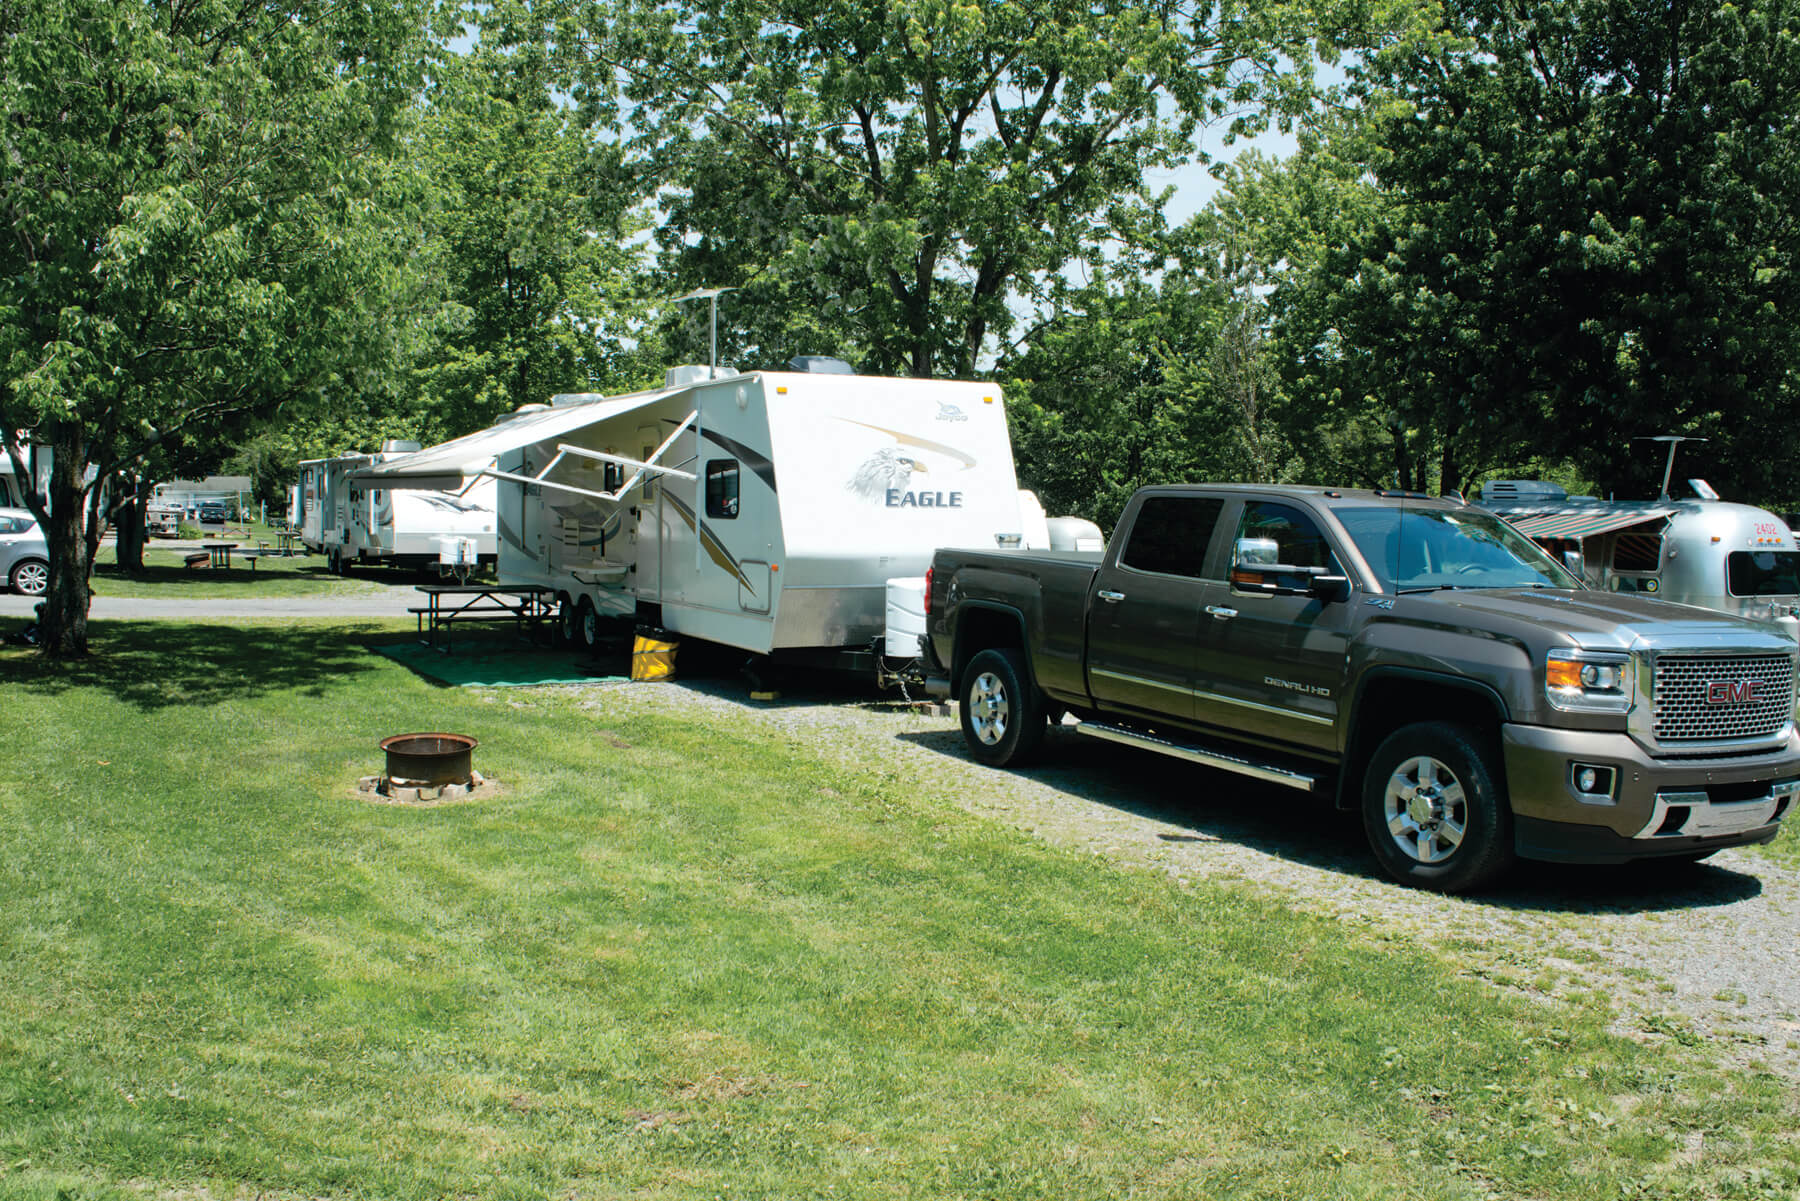 Rose Point Park Cabins And Camping Availability Bookyoursite 50 Amp Rv Hookup Full Electric Water Sewer